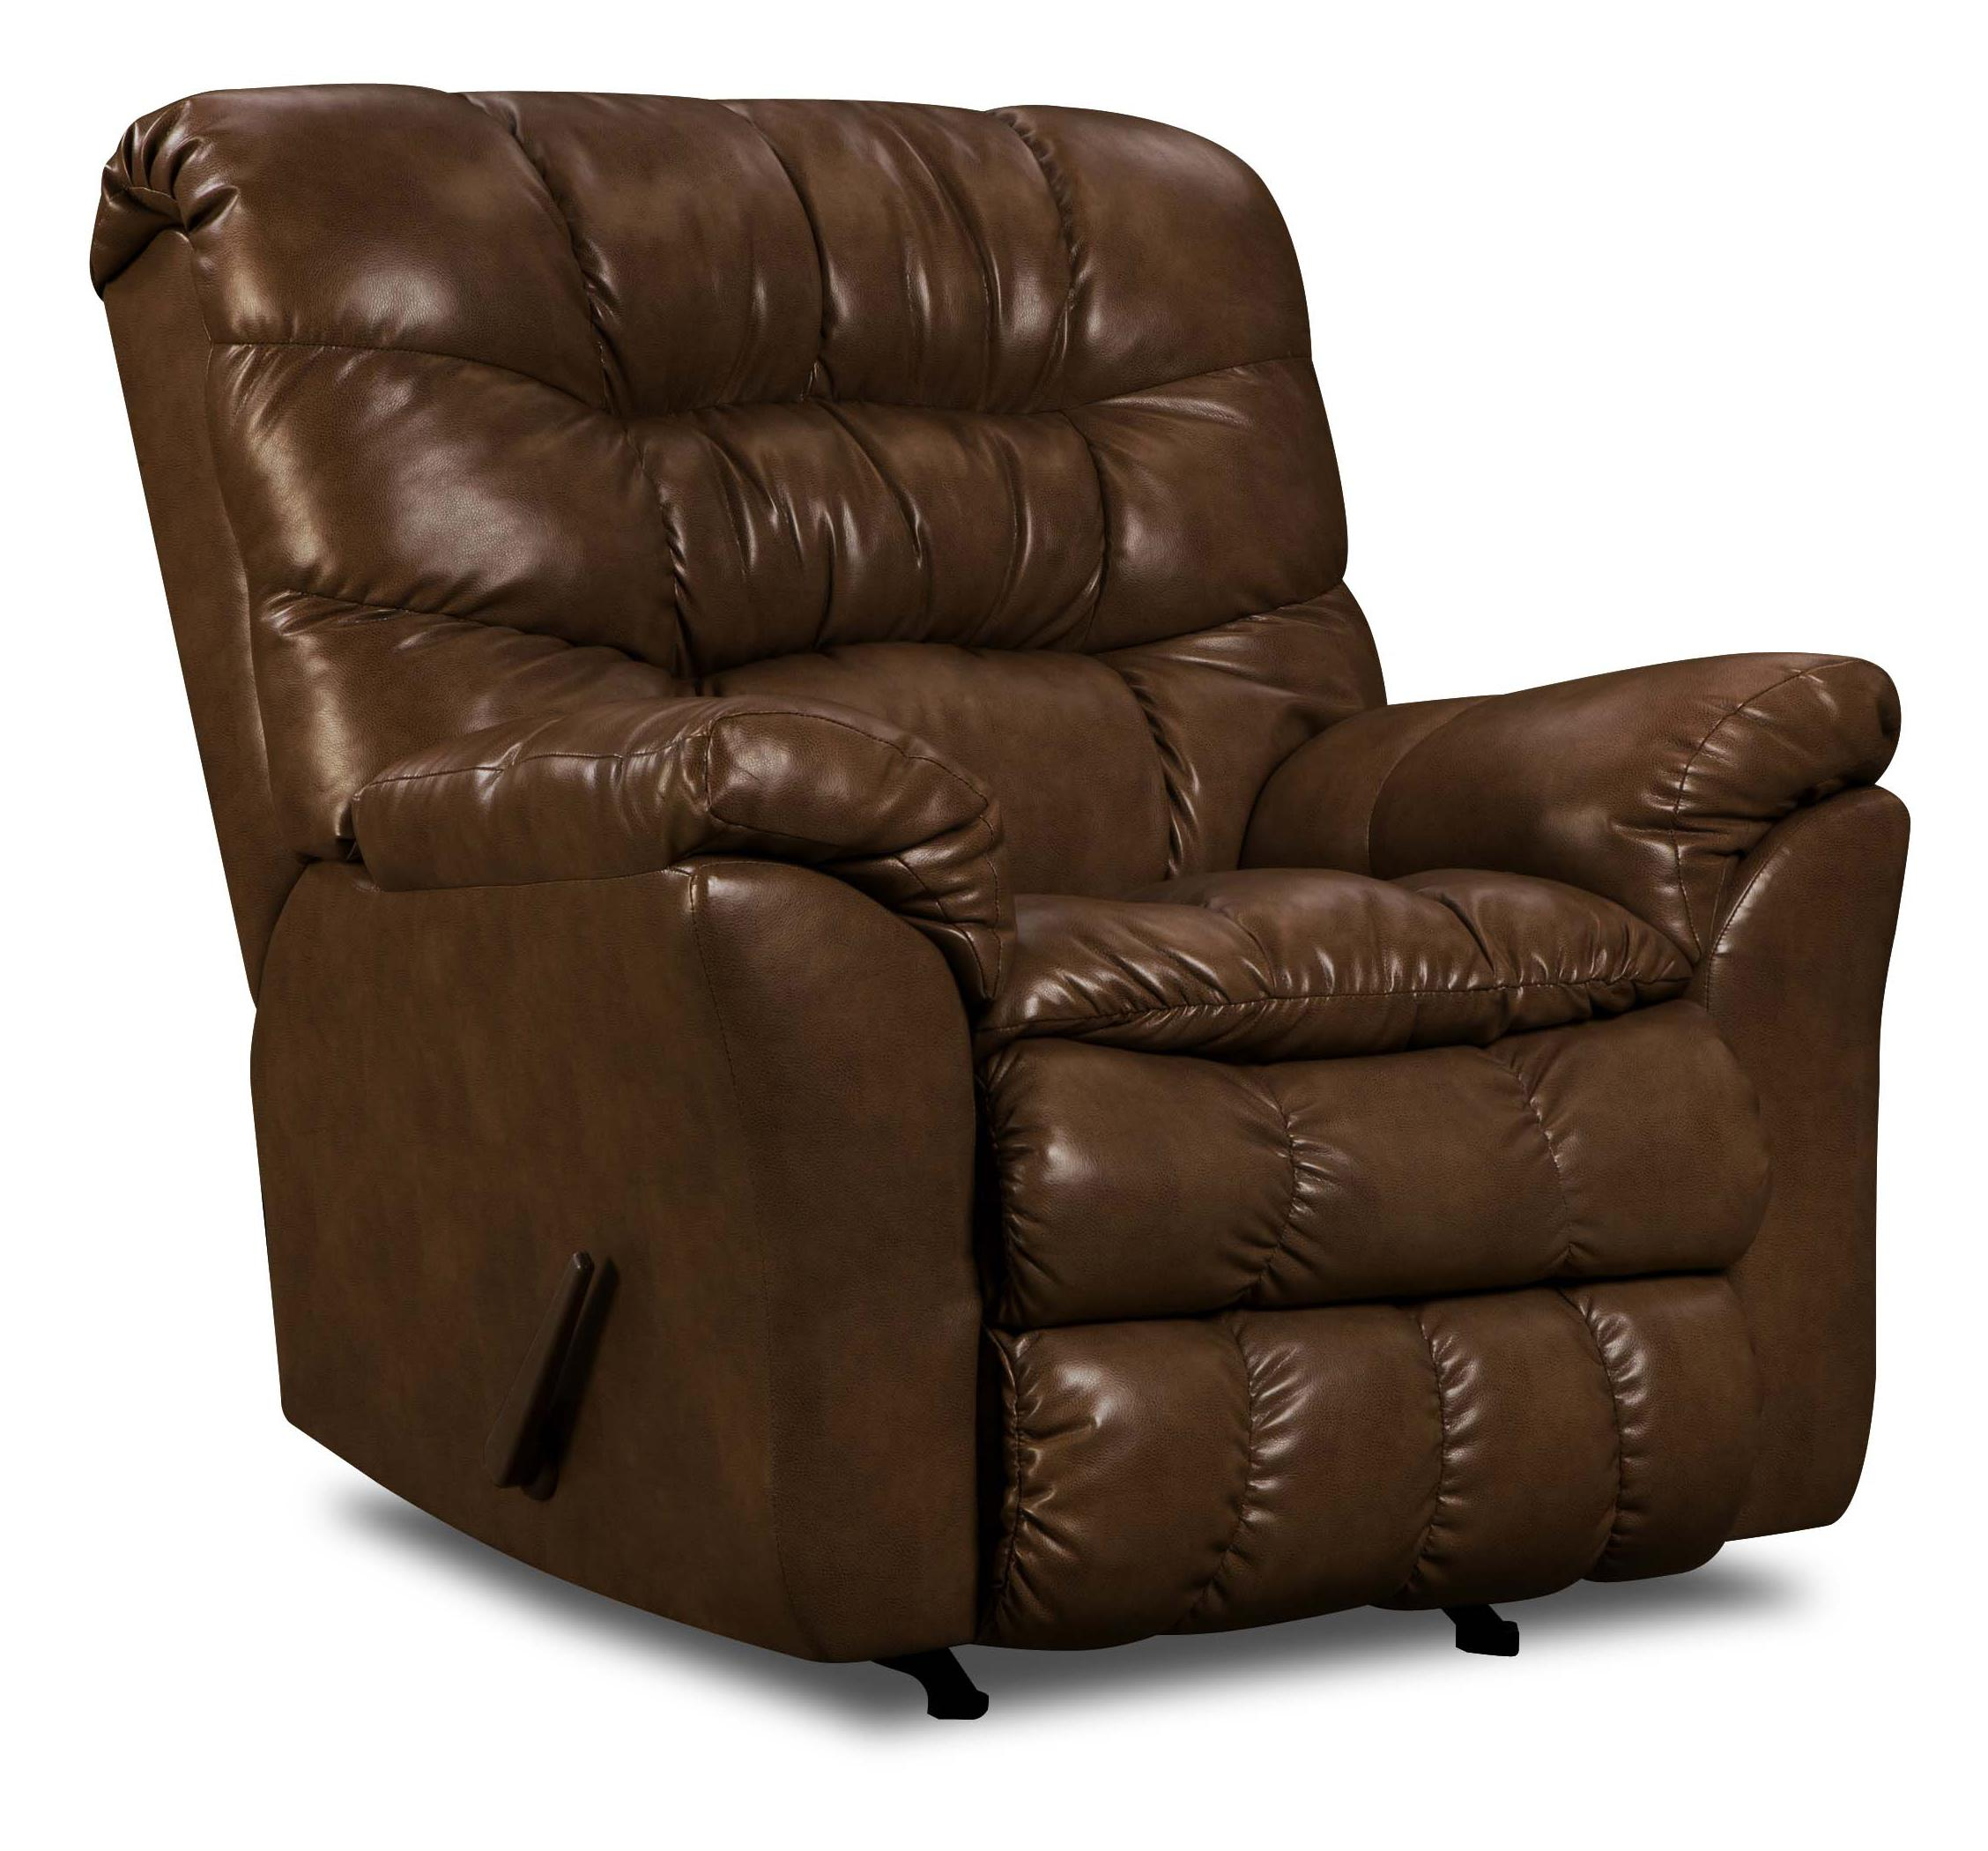 United Furniture Industries 689 Casual Power Rocker Recliner - Item Number: 689-P Rocker Tobacco